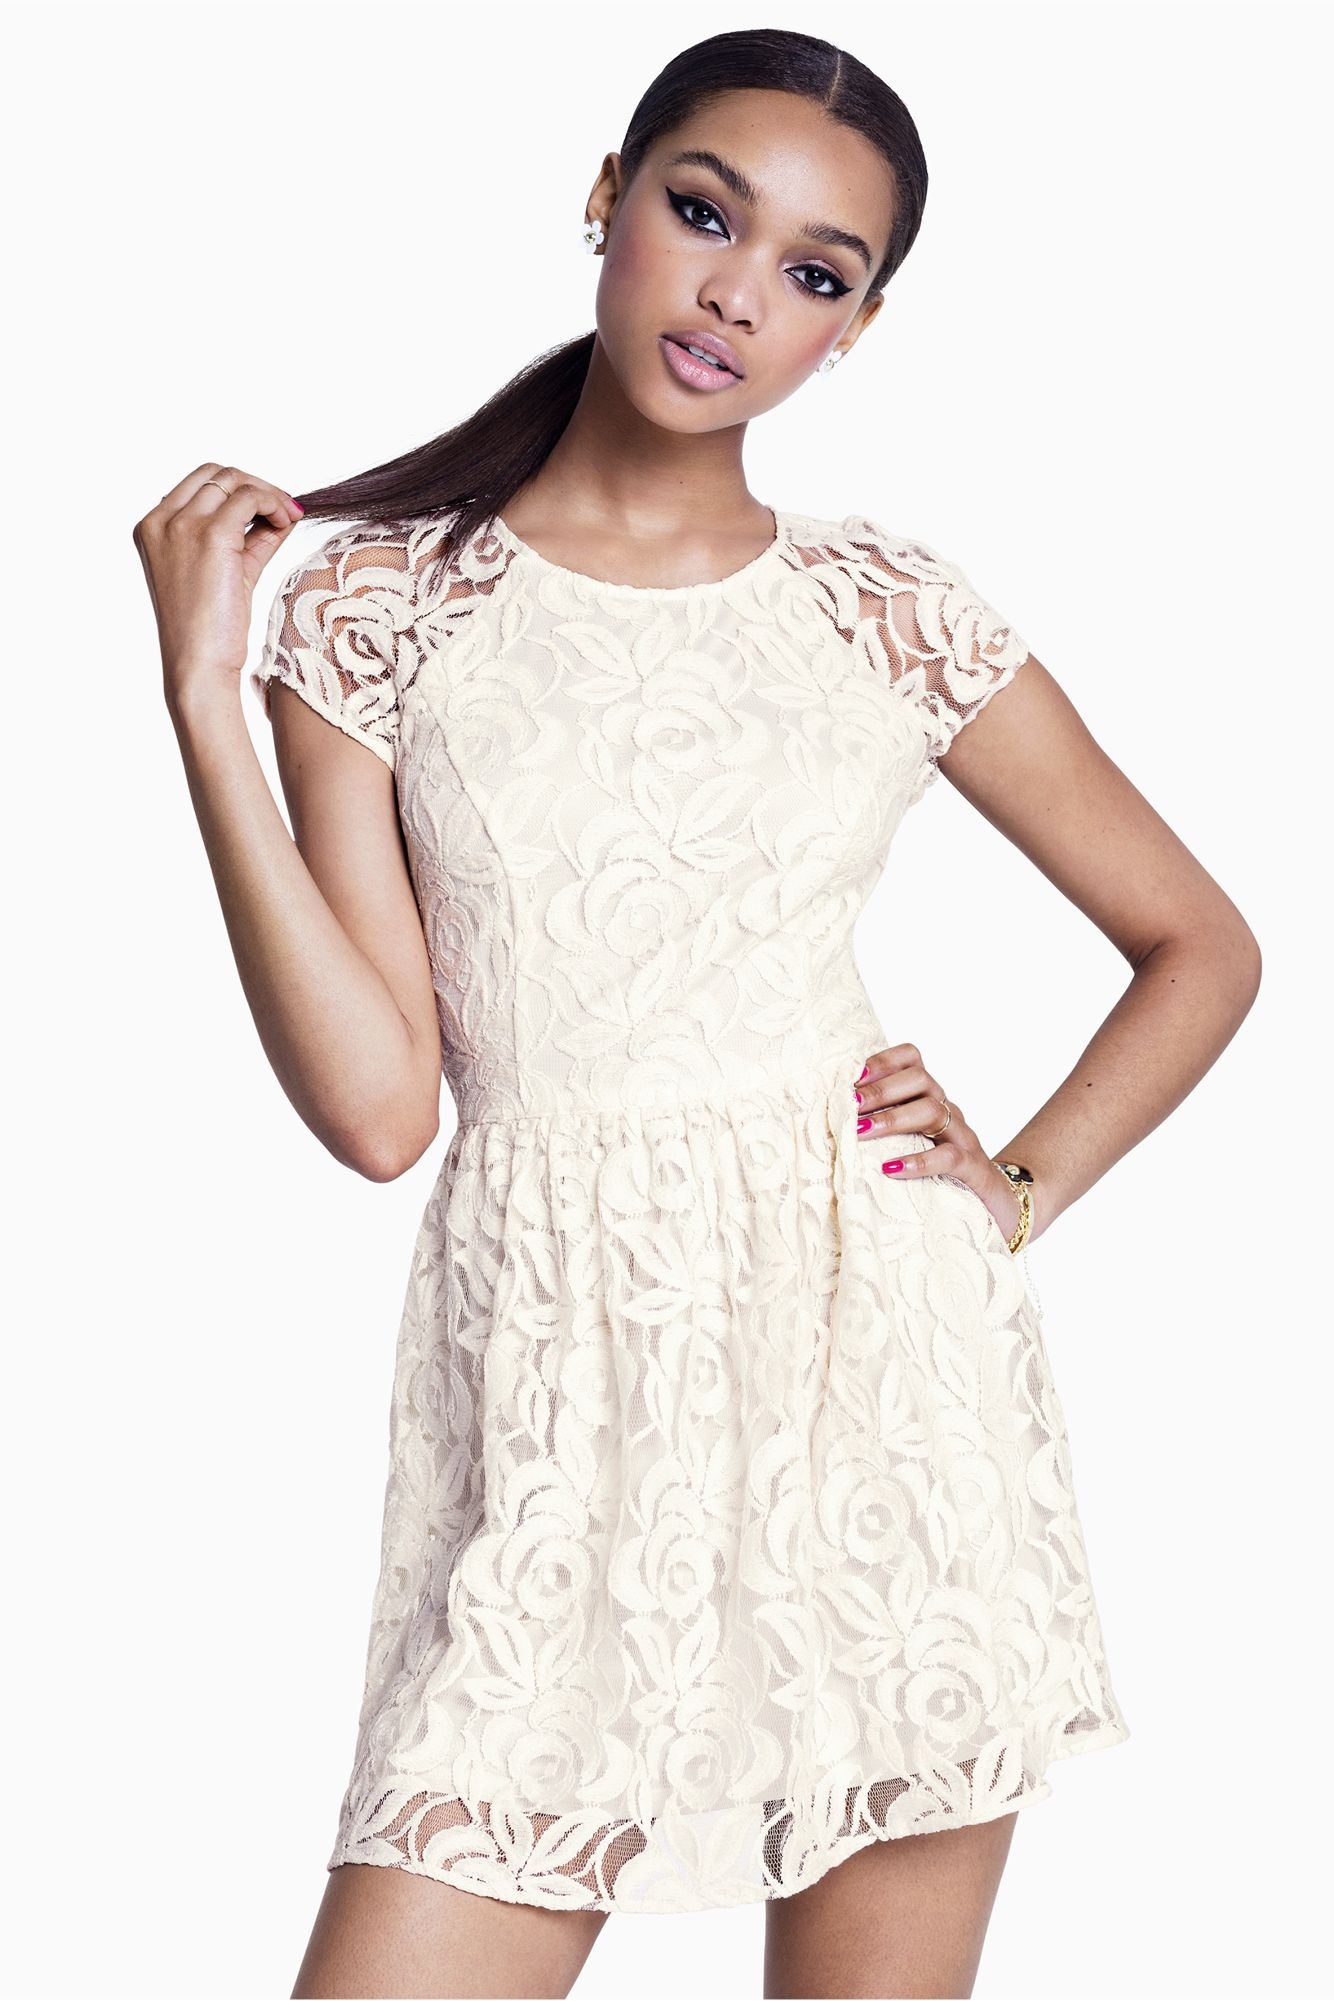 017f12db9 Short white lace dress with flared skirt. #HMDIVIDED | H&M DIVIDED ...